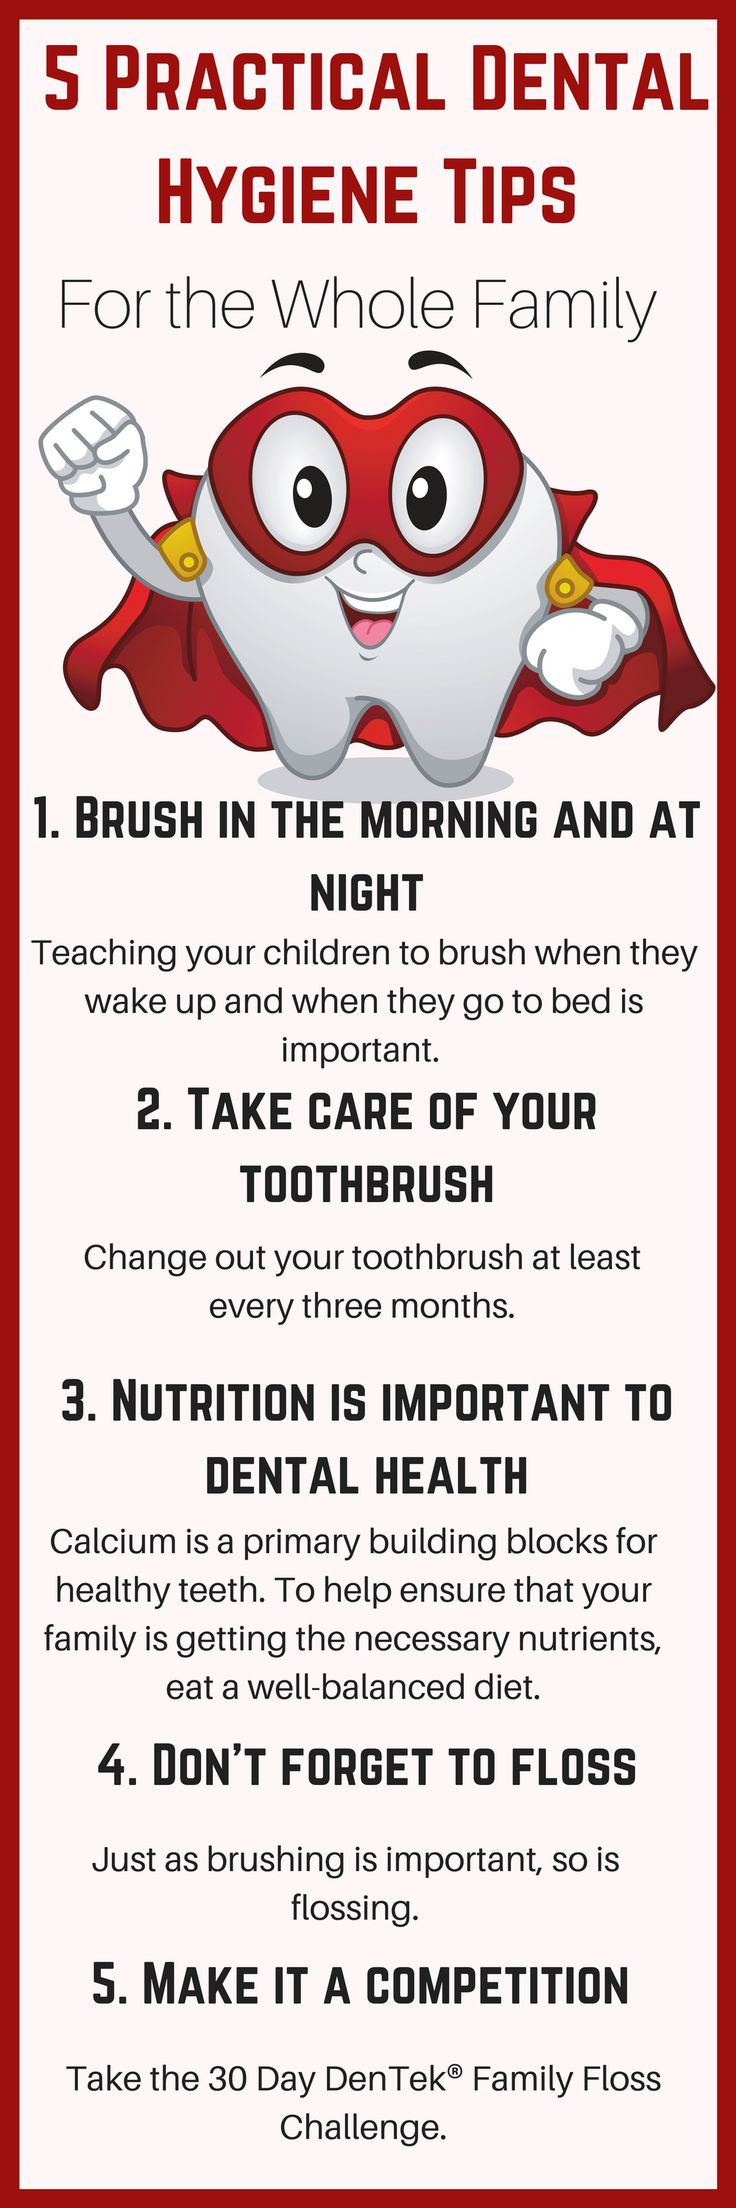 Taking care of their teeth should be a daily routine and one that cannot be neglected. Teaching them proper dental hygiene is important, and they are old enough now to do it on their own. #ad #DenTek #FamilyFlossChallenge @DenTek https://www.southernfamilyfun.com/dental-hygiene-tips-family/ via @winonarogers